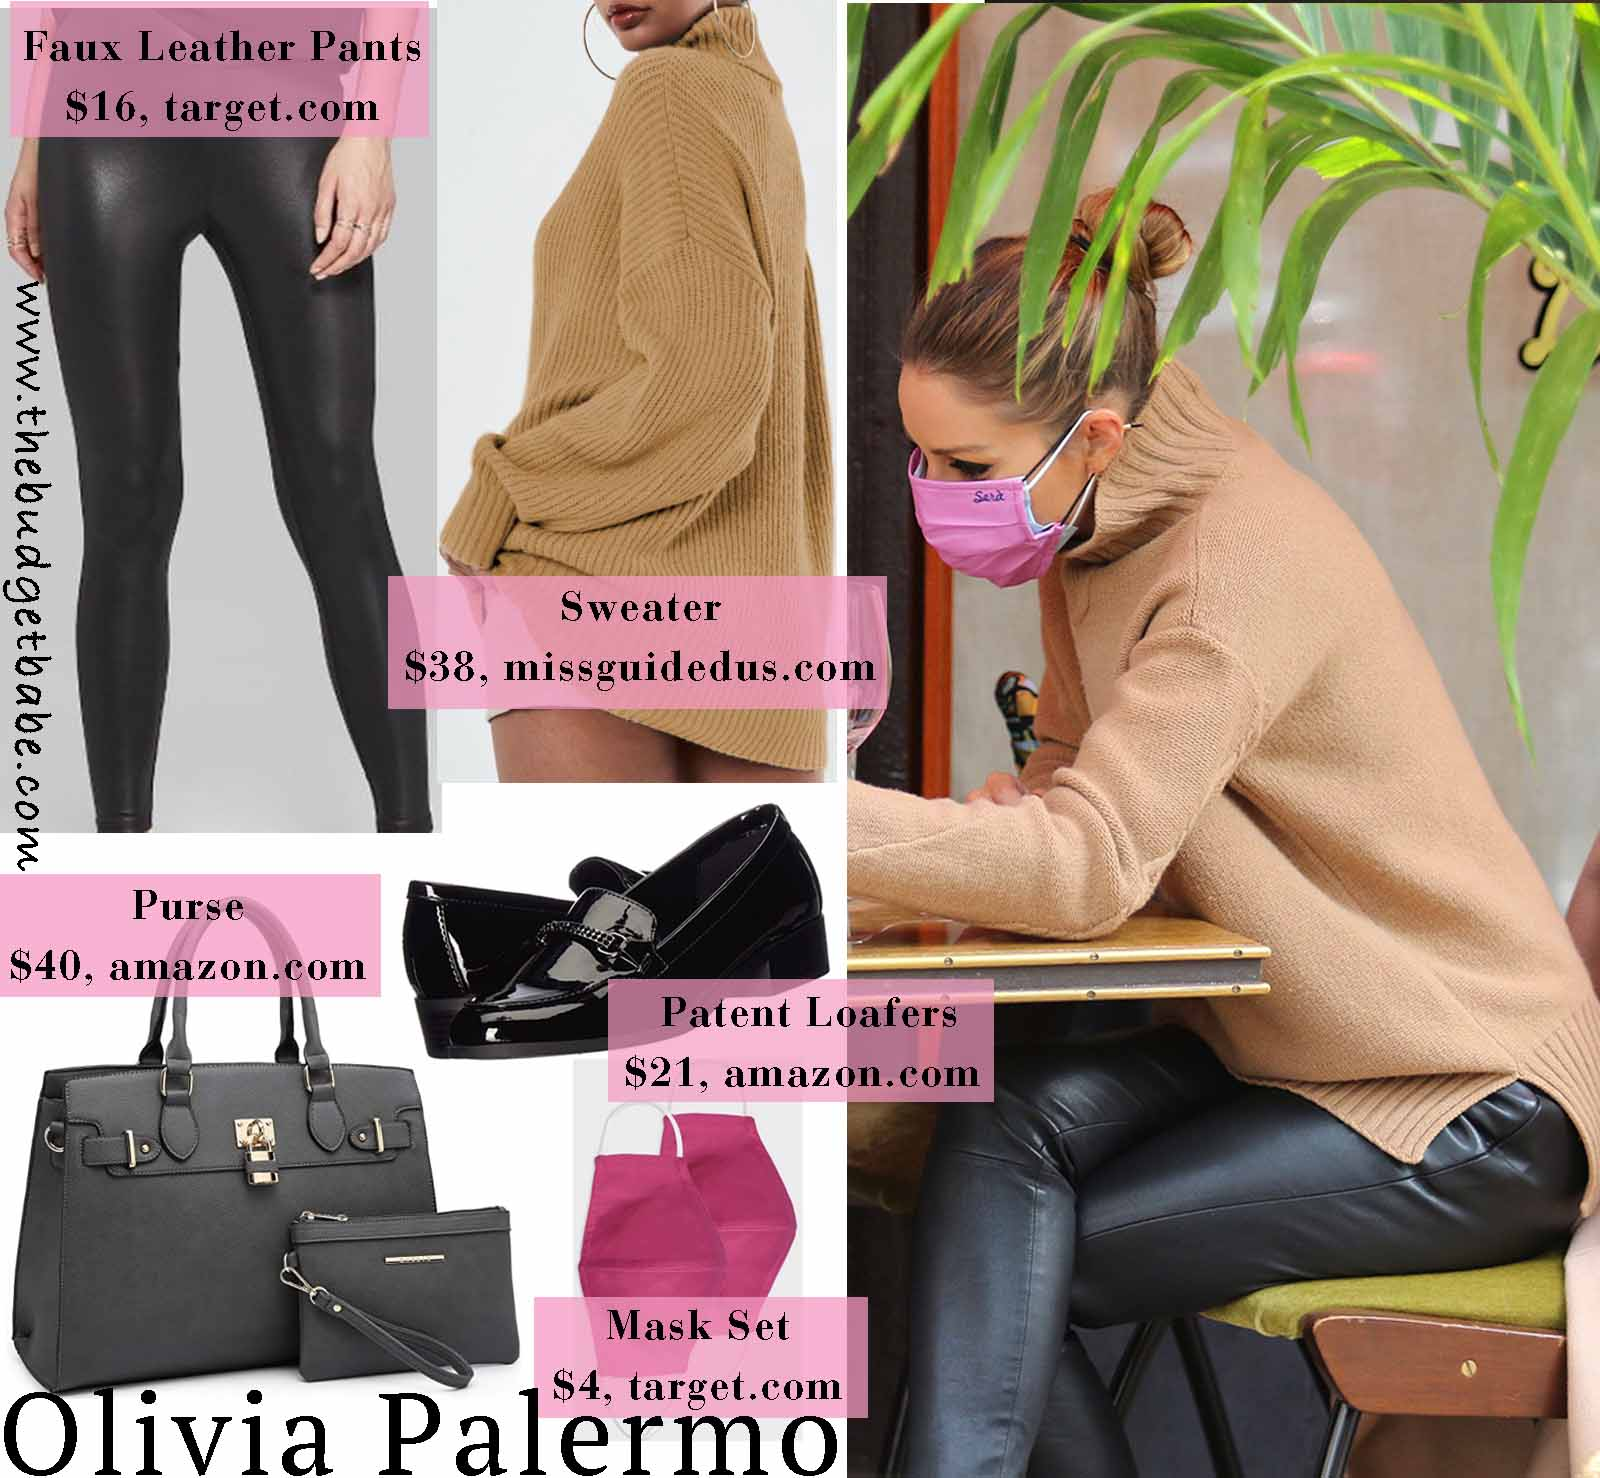 Oliva is chic in an oversized sweater.